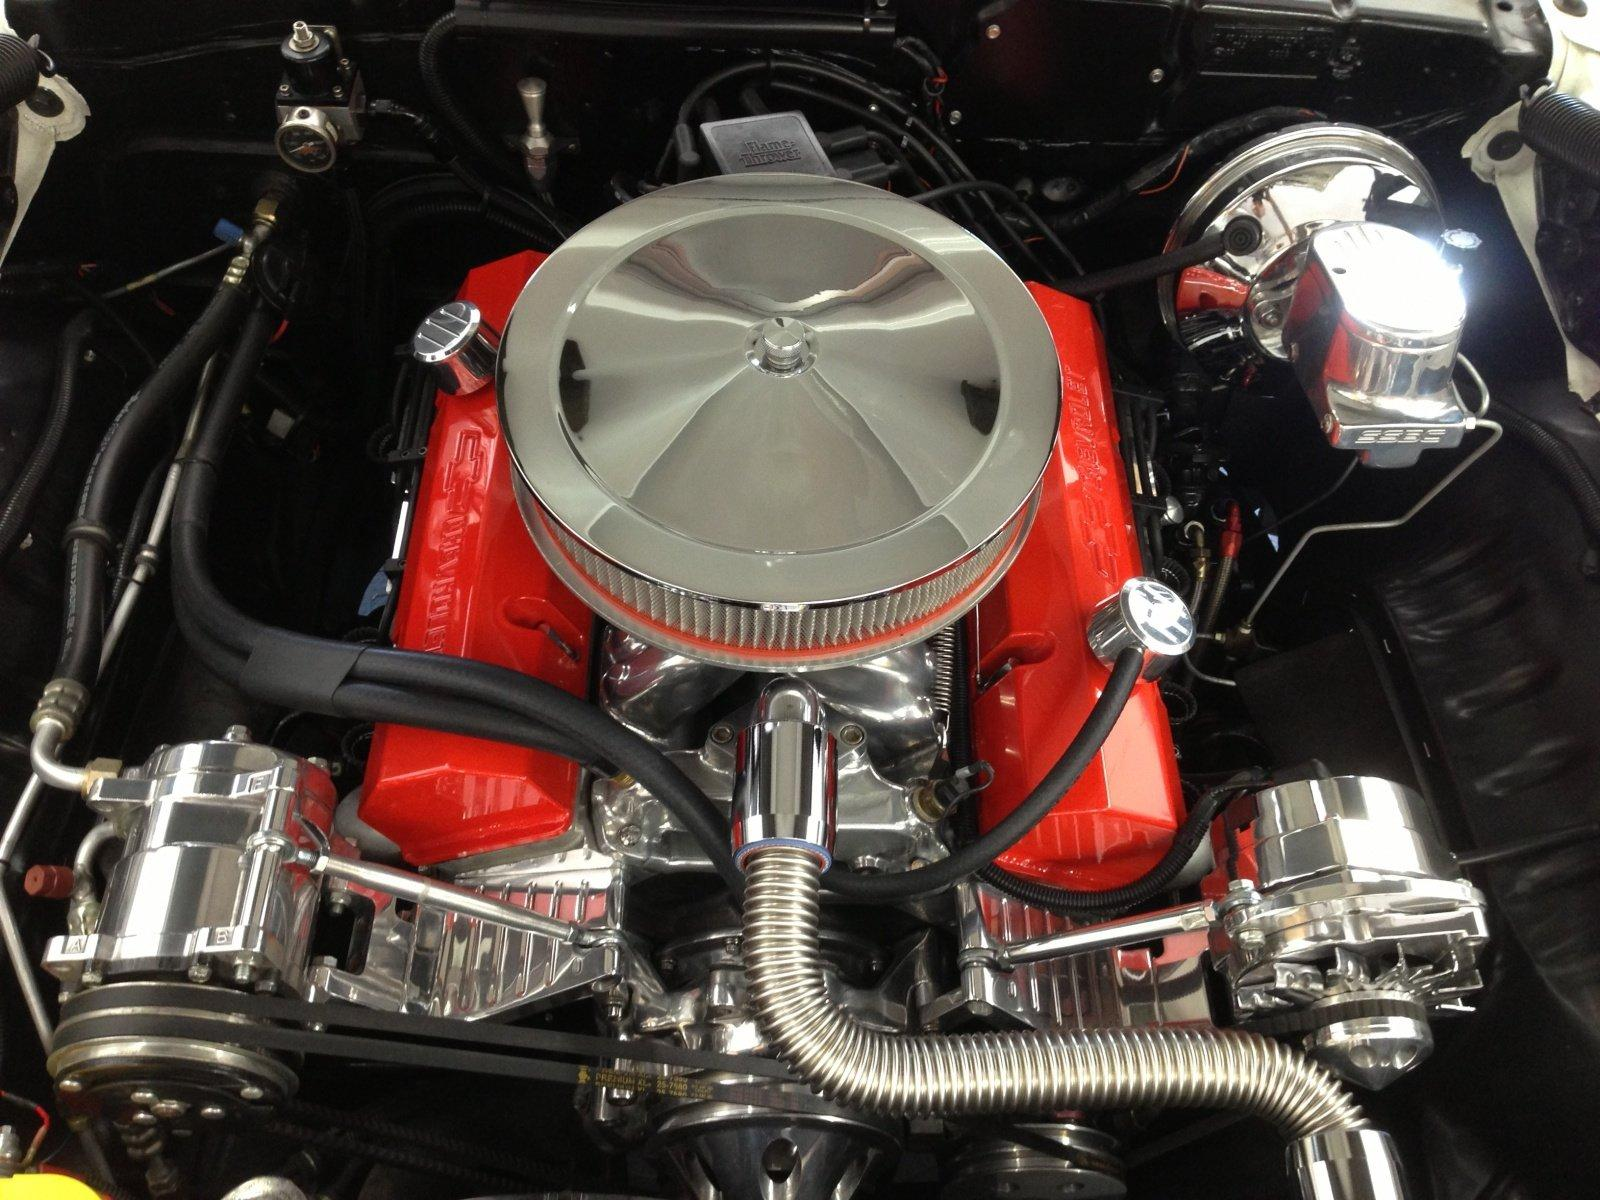 1969 Sterling Kit Car Turn Key For Sale: 1969 RS/SS Camaro For Sale. 383 Stroker, EXCELLENT CONDITION